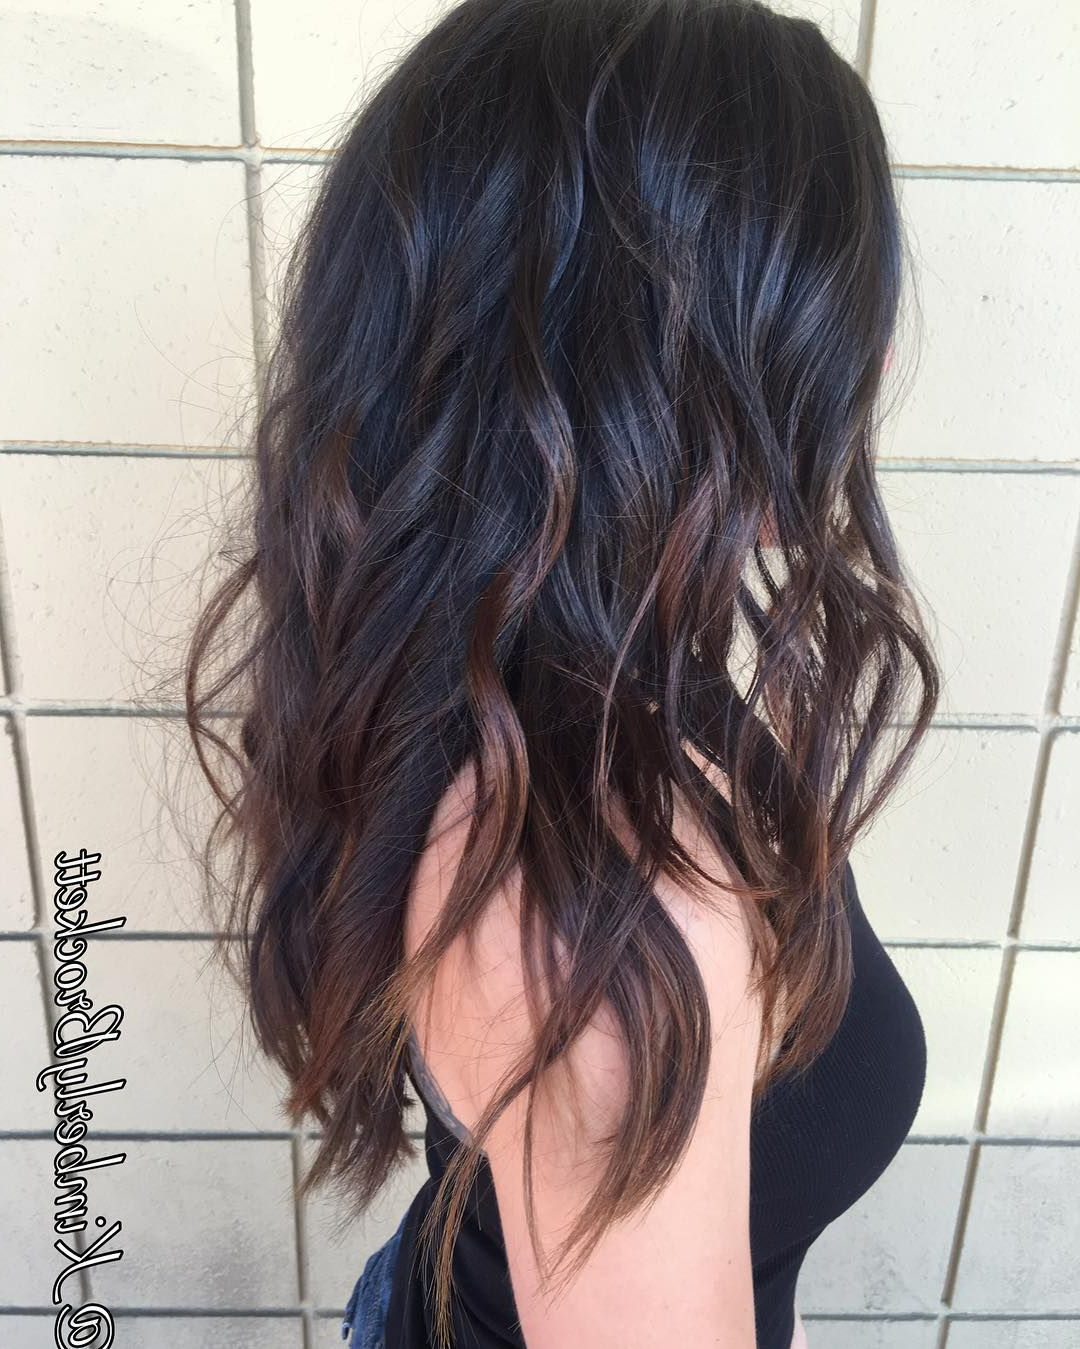 Wavy Black Long Layered Hair With Chocolate Brown Balayage | Long Regarding Chic Chocolate Layers Hairstyles (View 20 of 20)